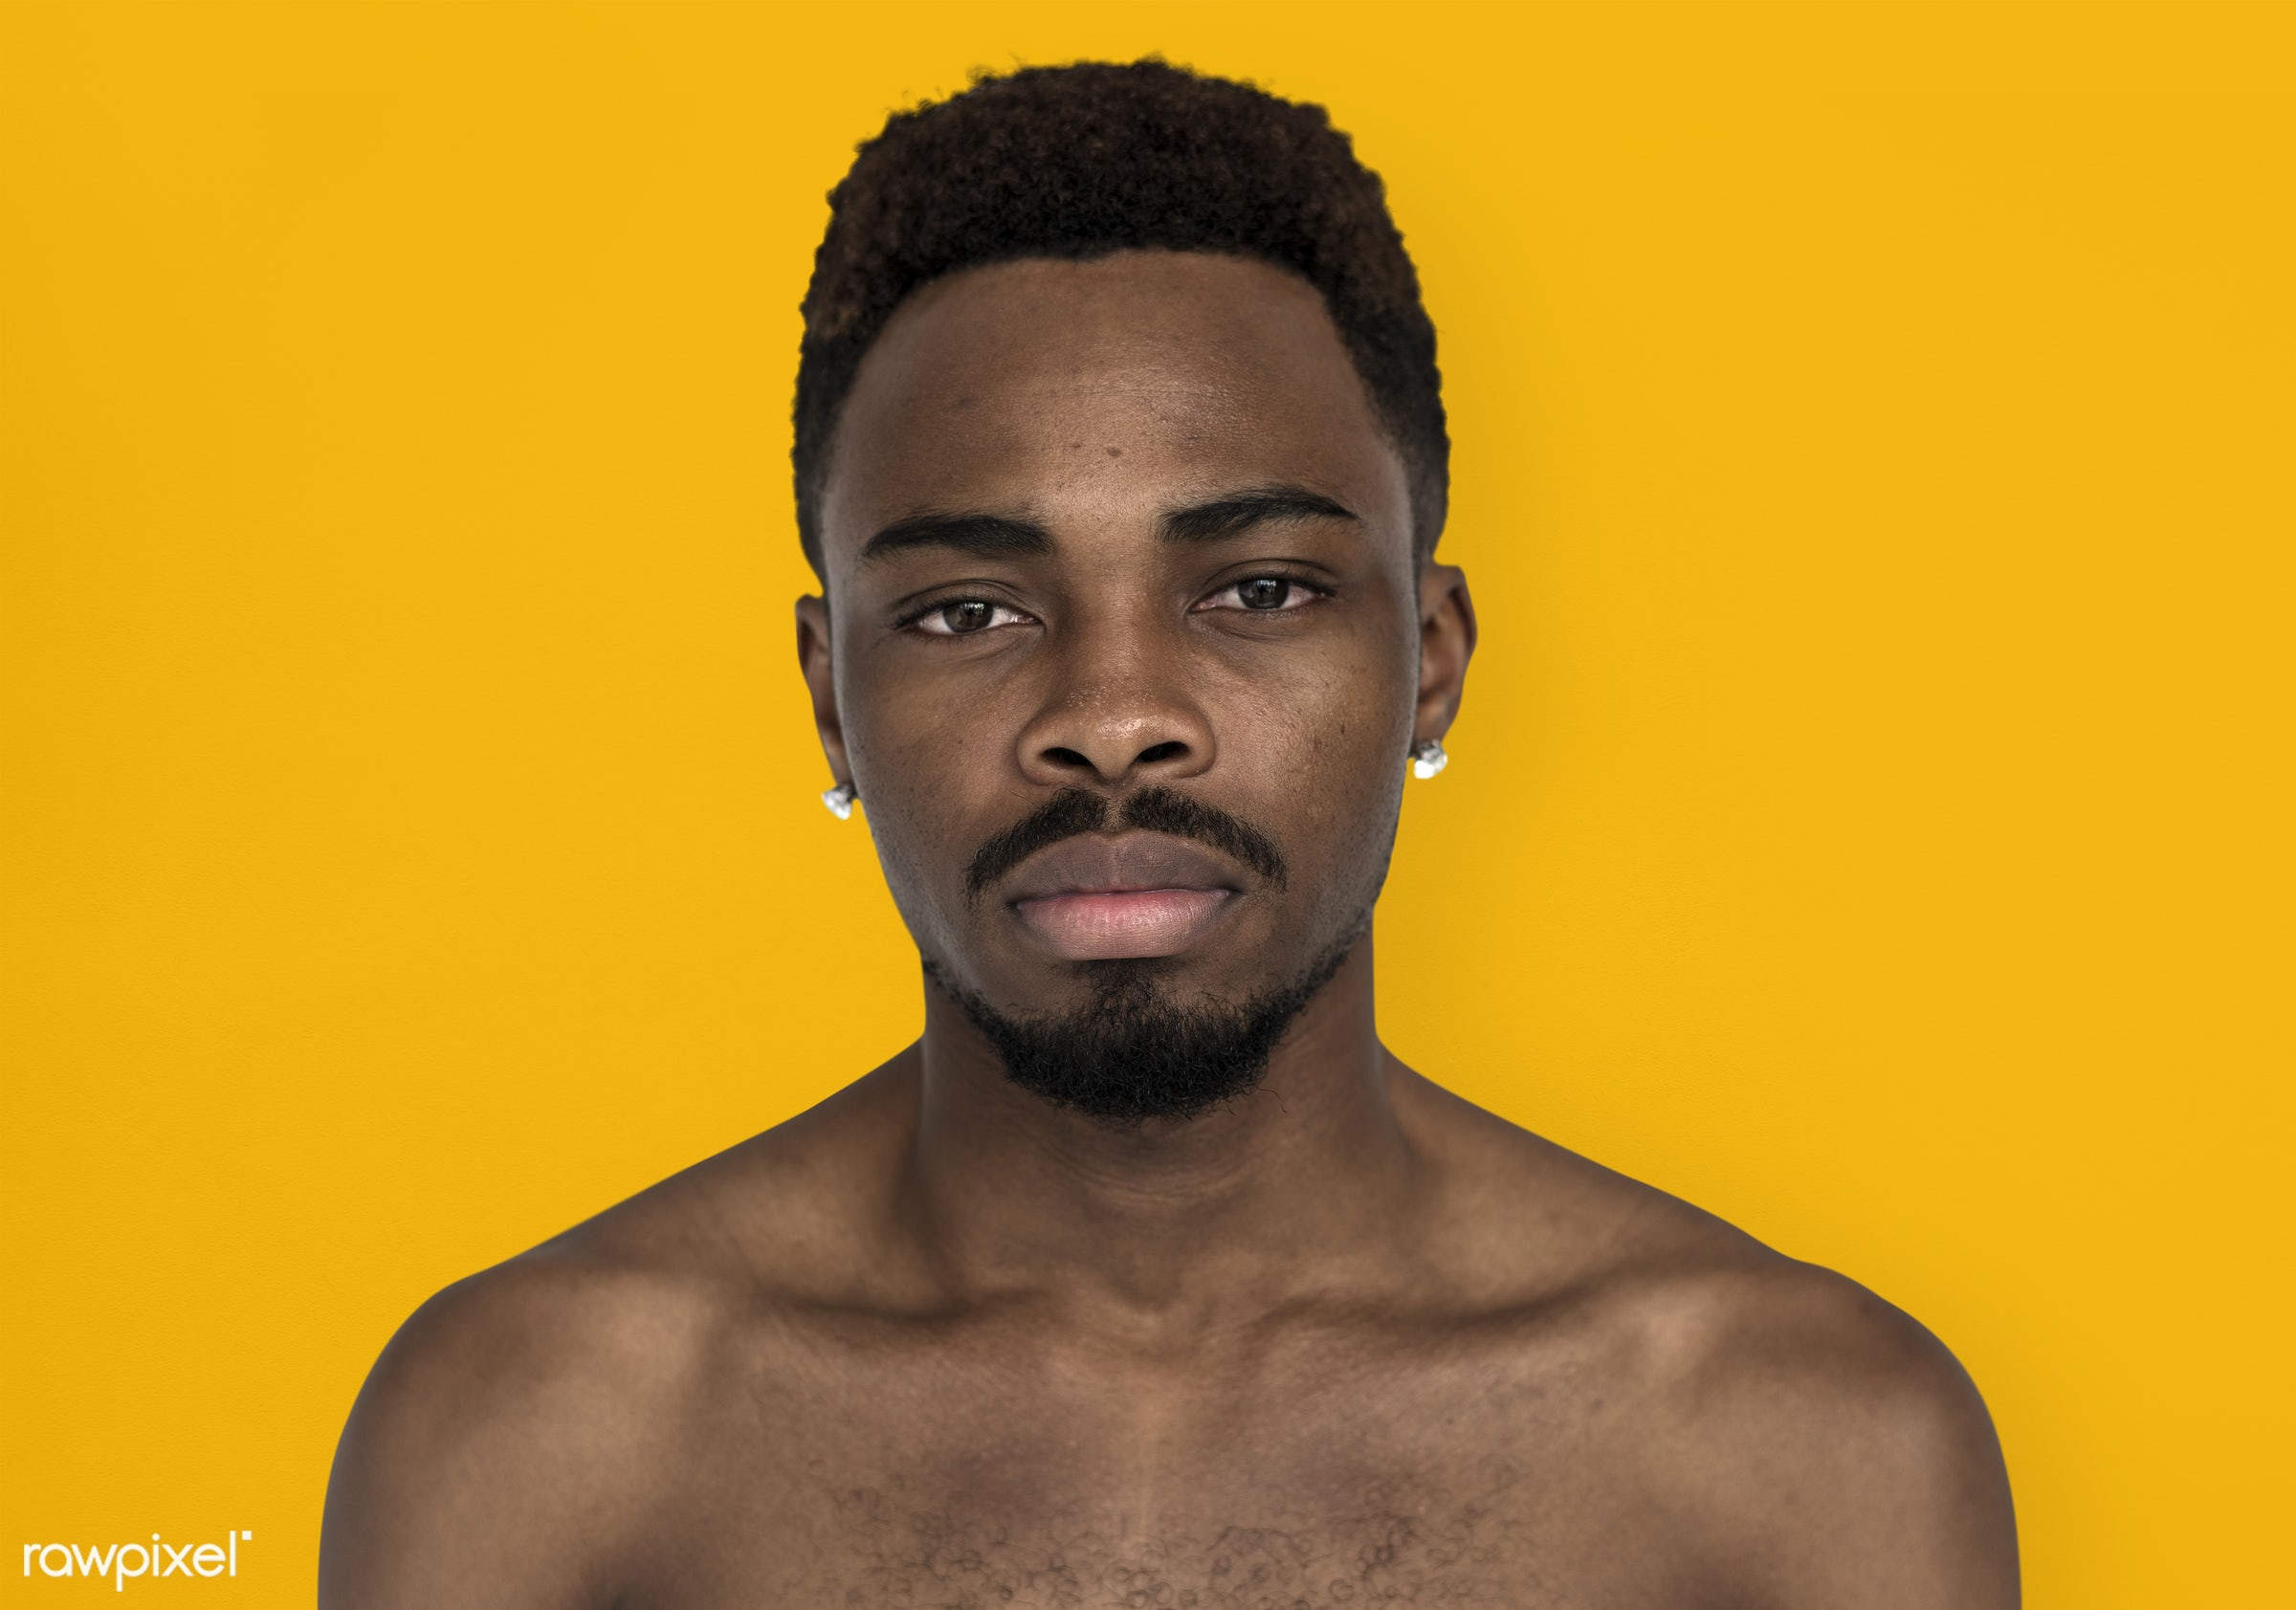 studio, face, person, yellow, people, bare chest, solo, cold, serious, man, black, earrings, isolated, orange, topless, guy...